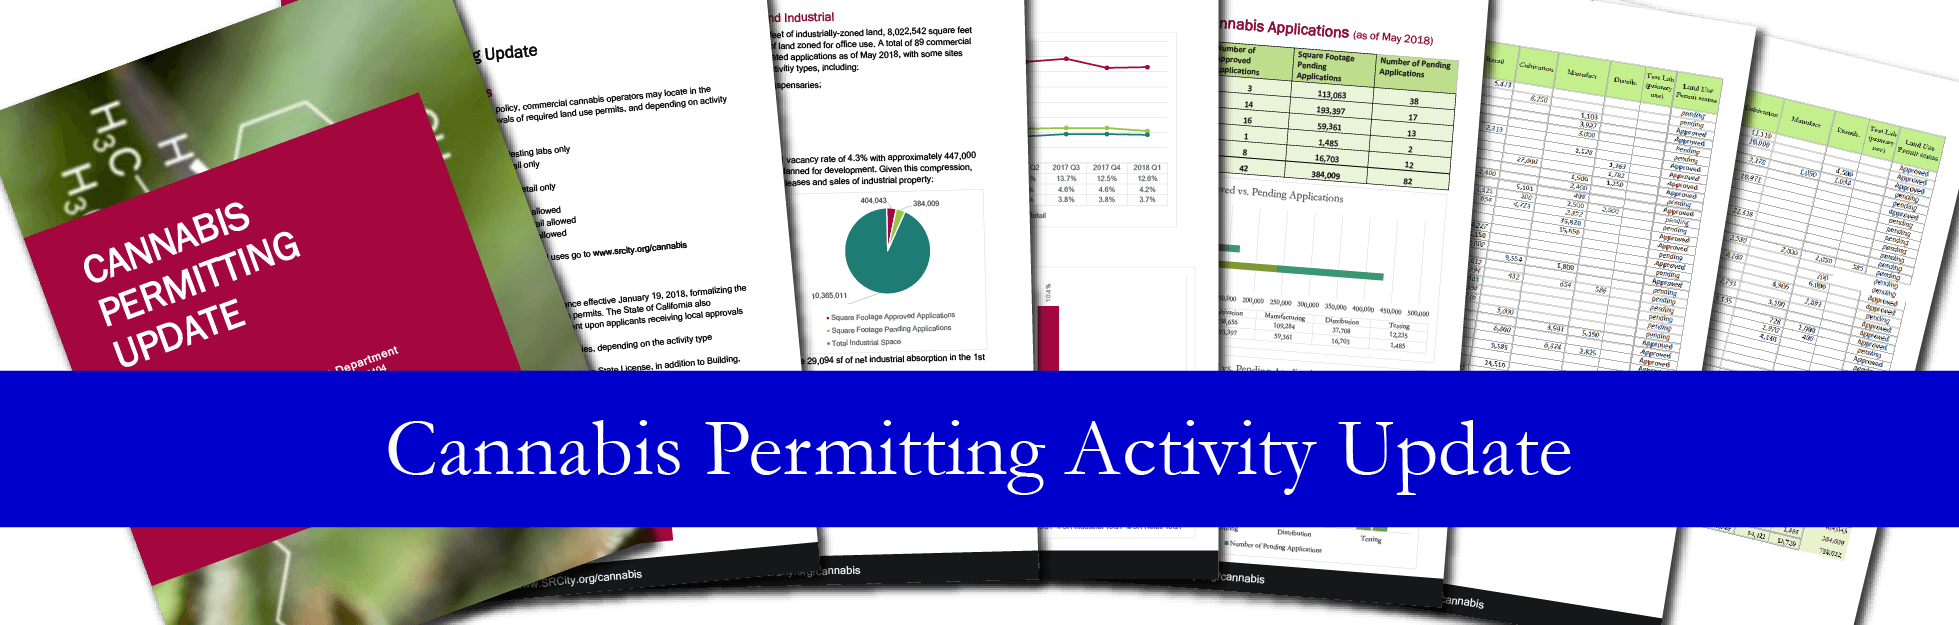 Cannabis Permitting Activity Update